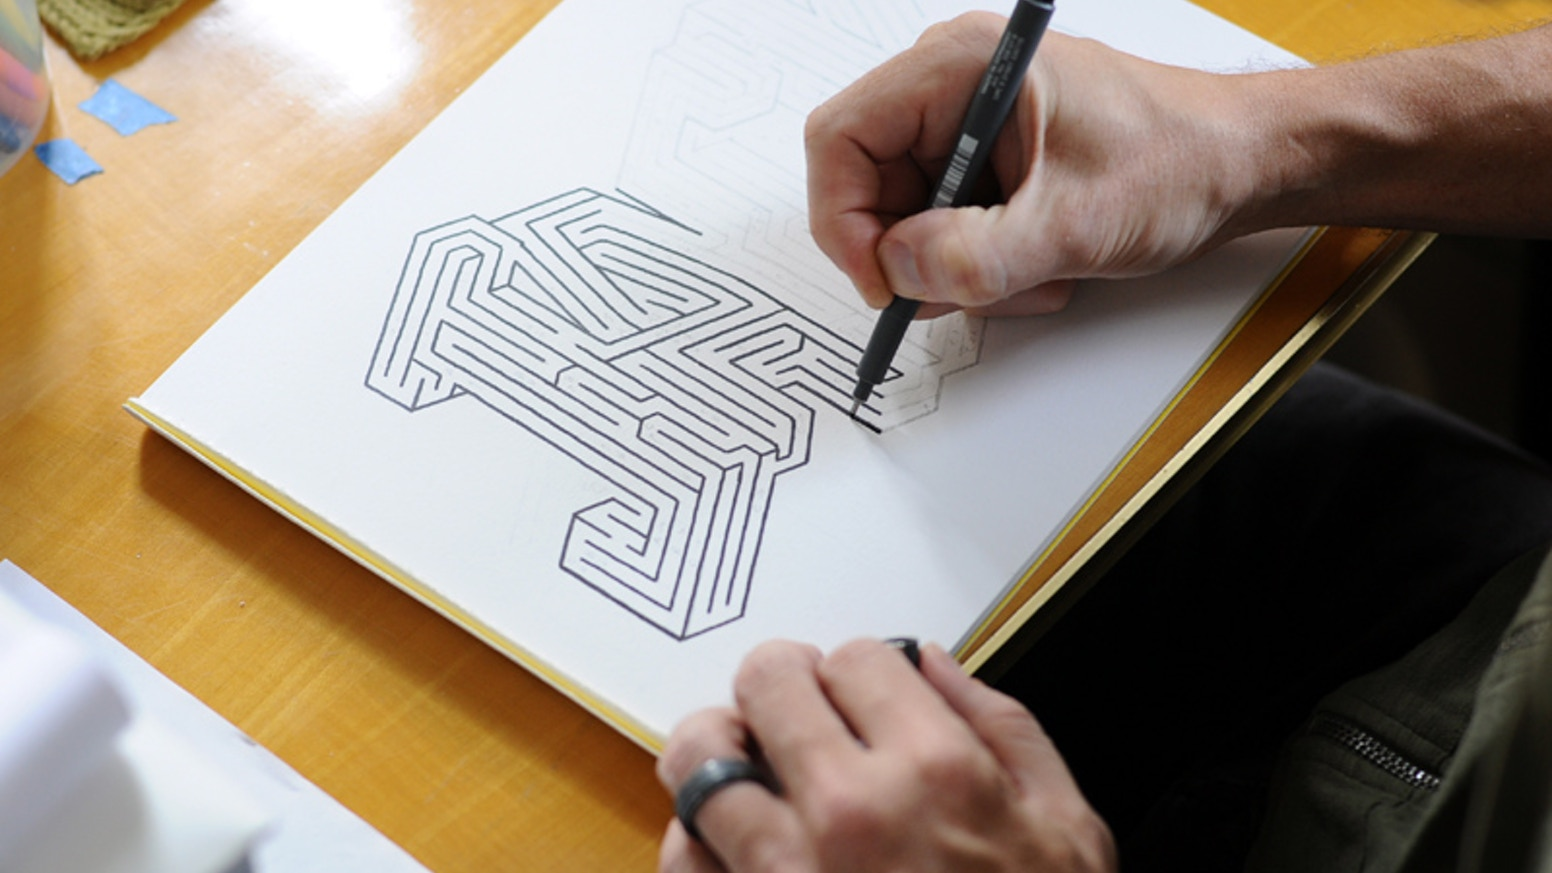 Commission me to turn your name into a cool graphic maze!  A real maze with only one solution, ready to print any size you like.